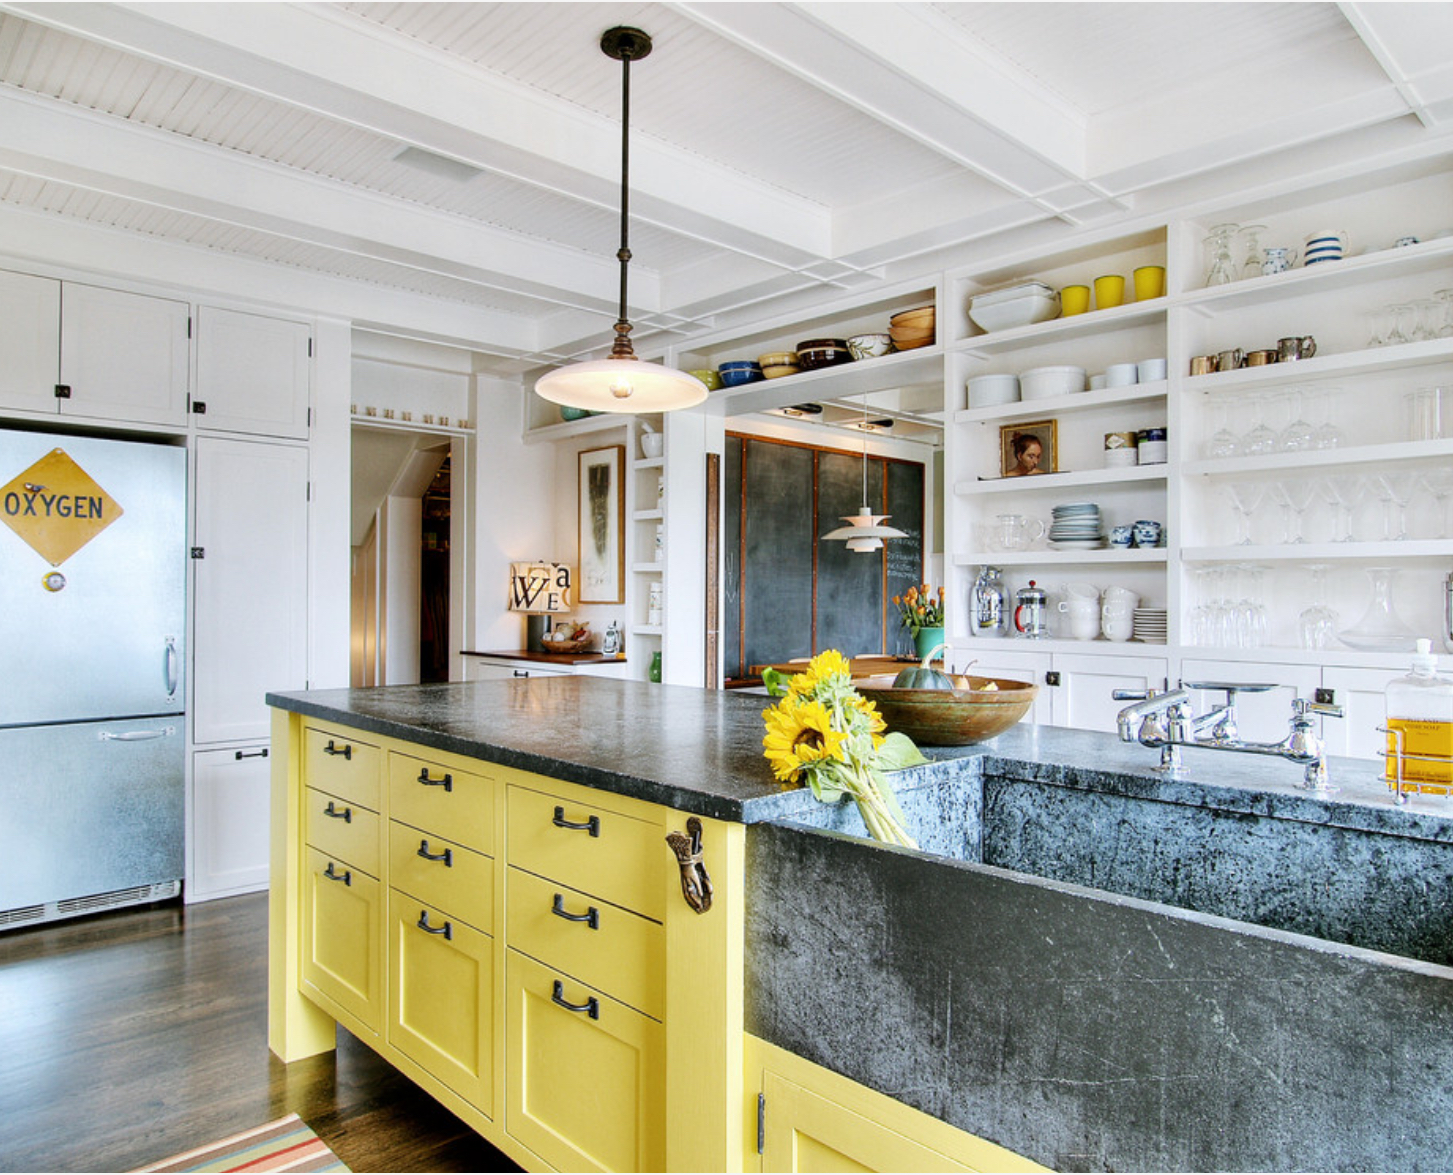 Soapstone sink and counter top  Photo: J.A.S Design Build